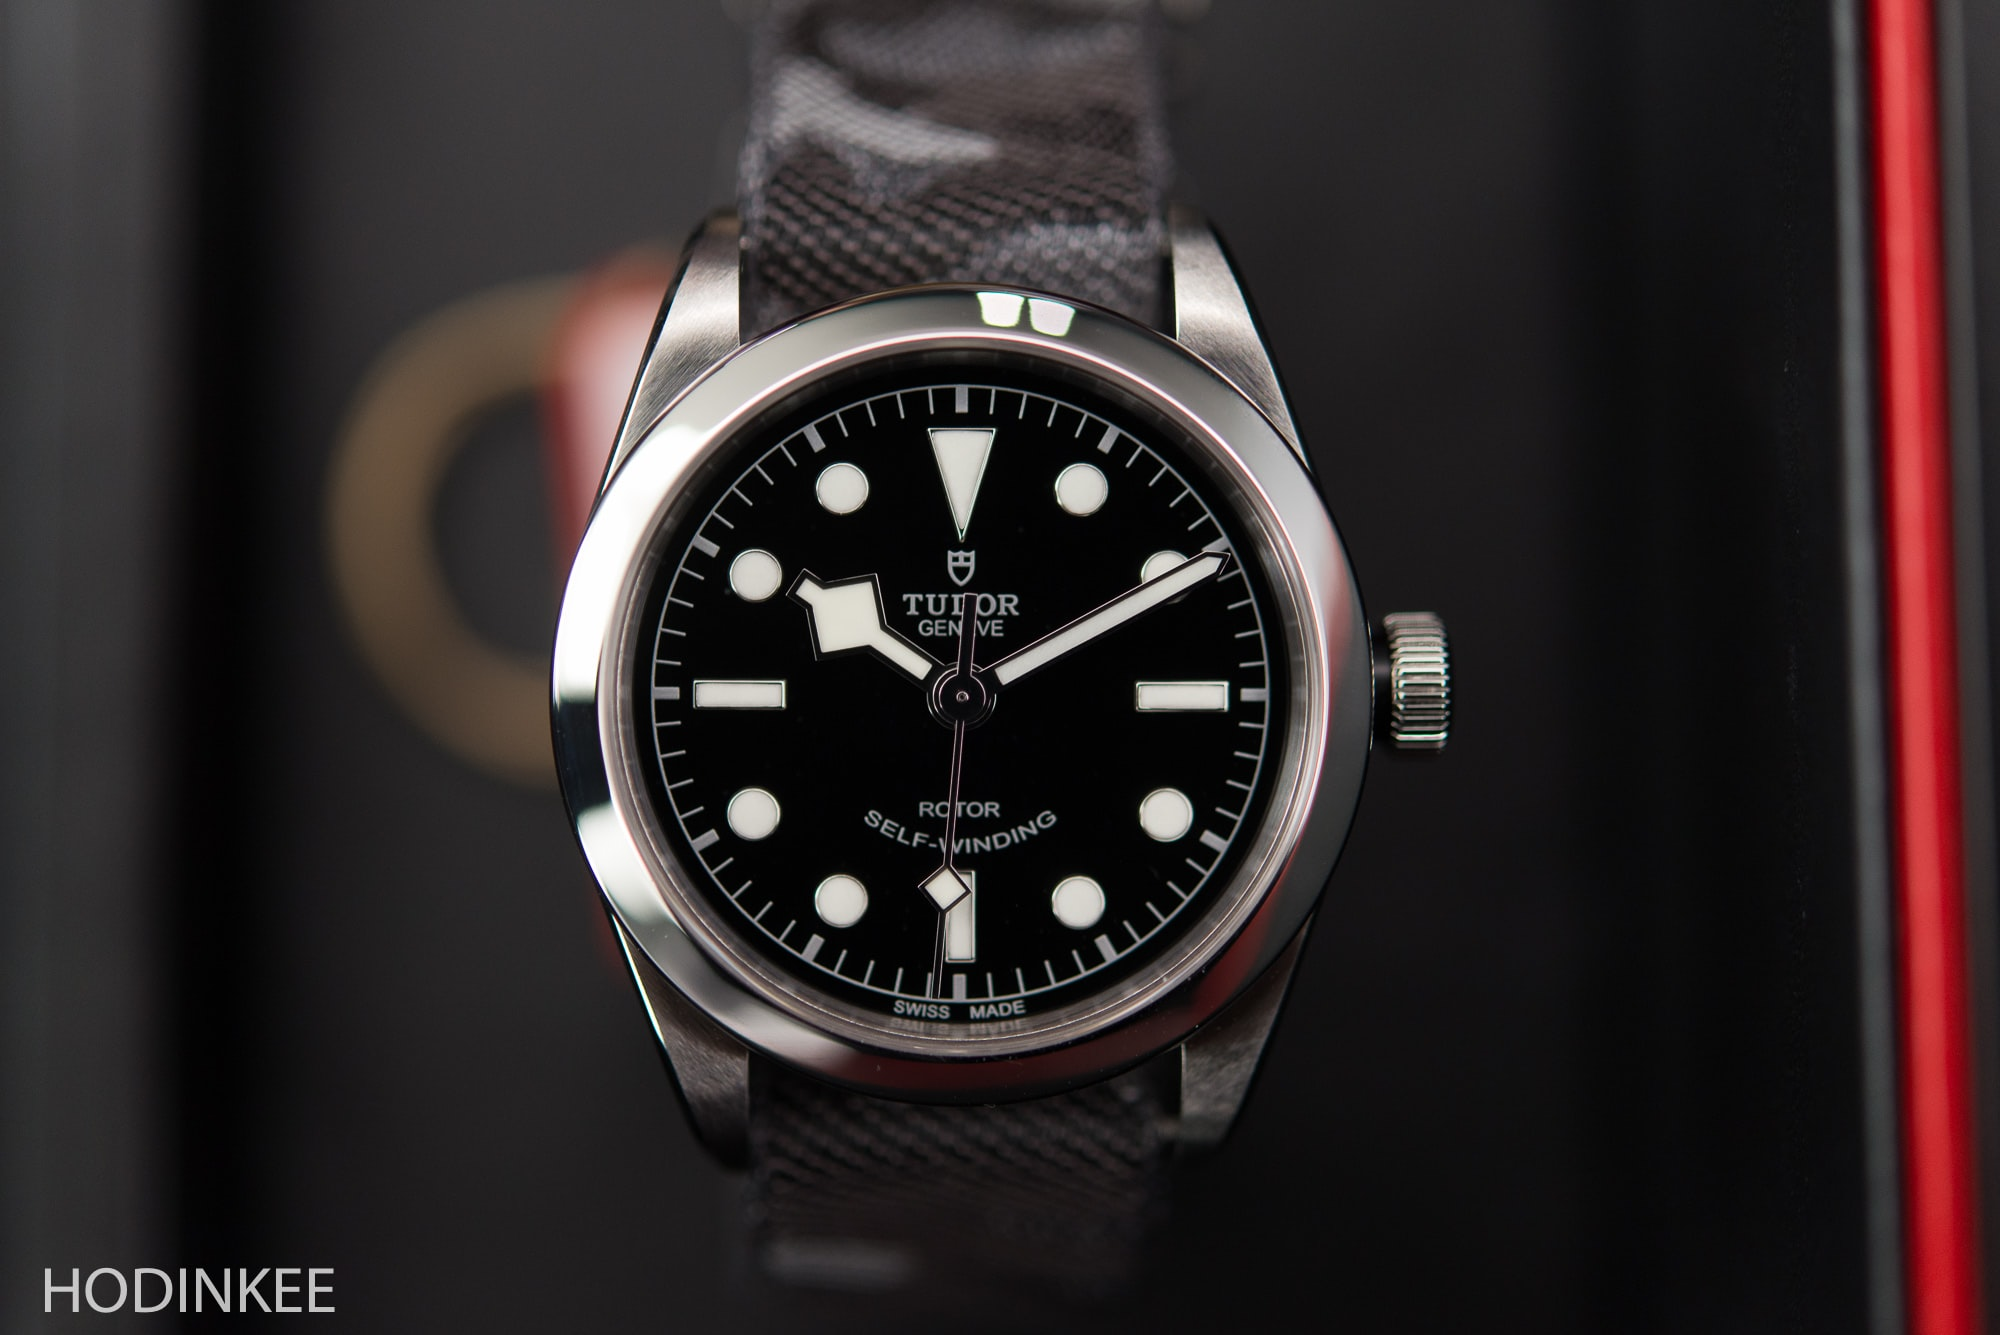 tudor black bay 36 Editorial: Our Favorite Things About The Watch Industry In 2016 (And Our Hopes For 2017) Editorial: Our Favorite Things About The Watch Industry In 2016 (And Our Hopes For 2017) TudorBlackBay36 2